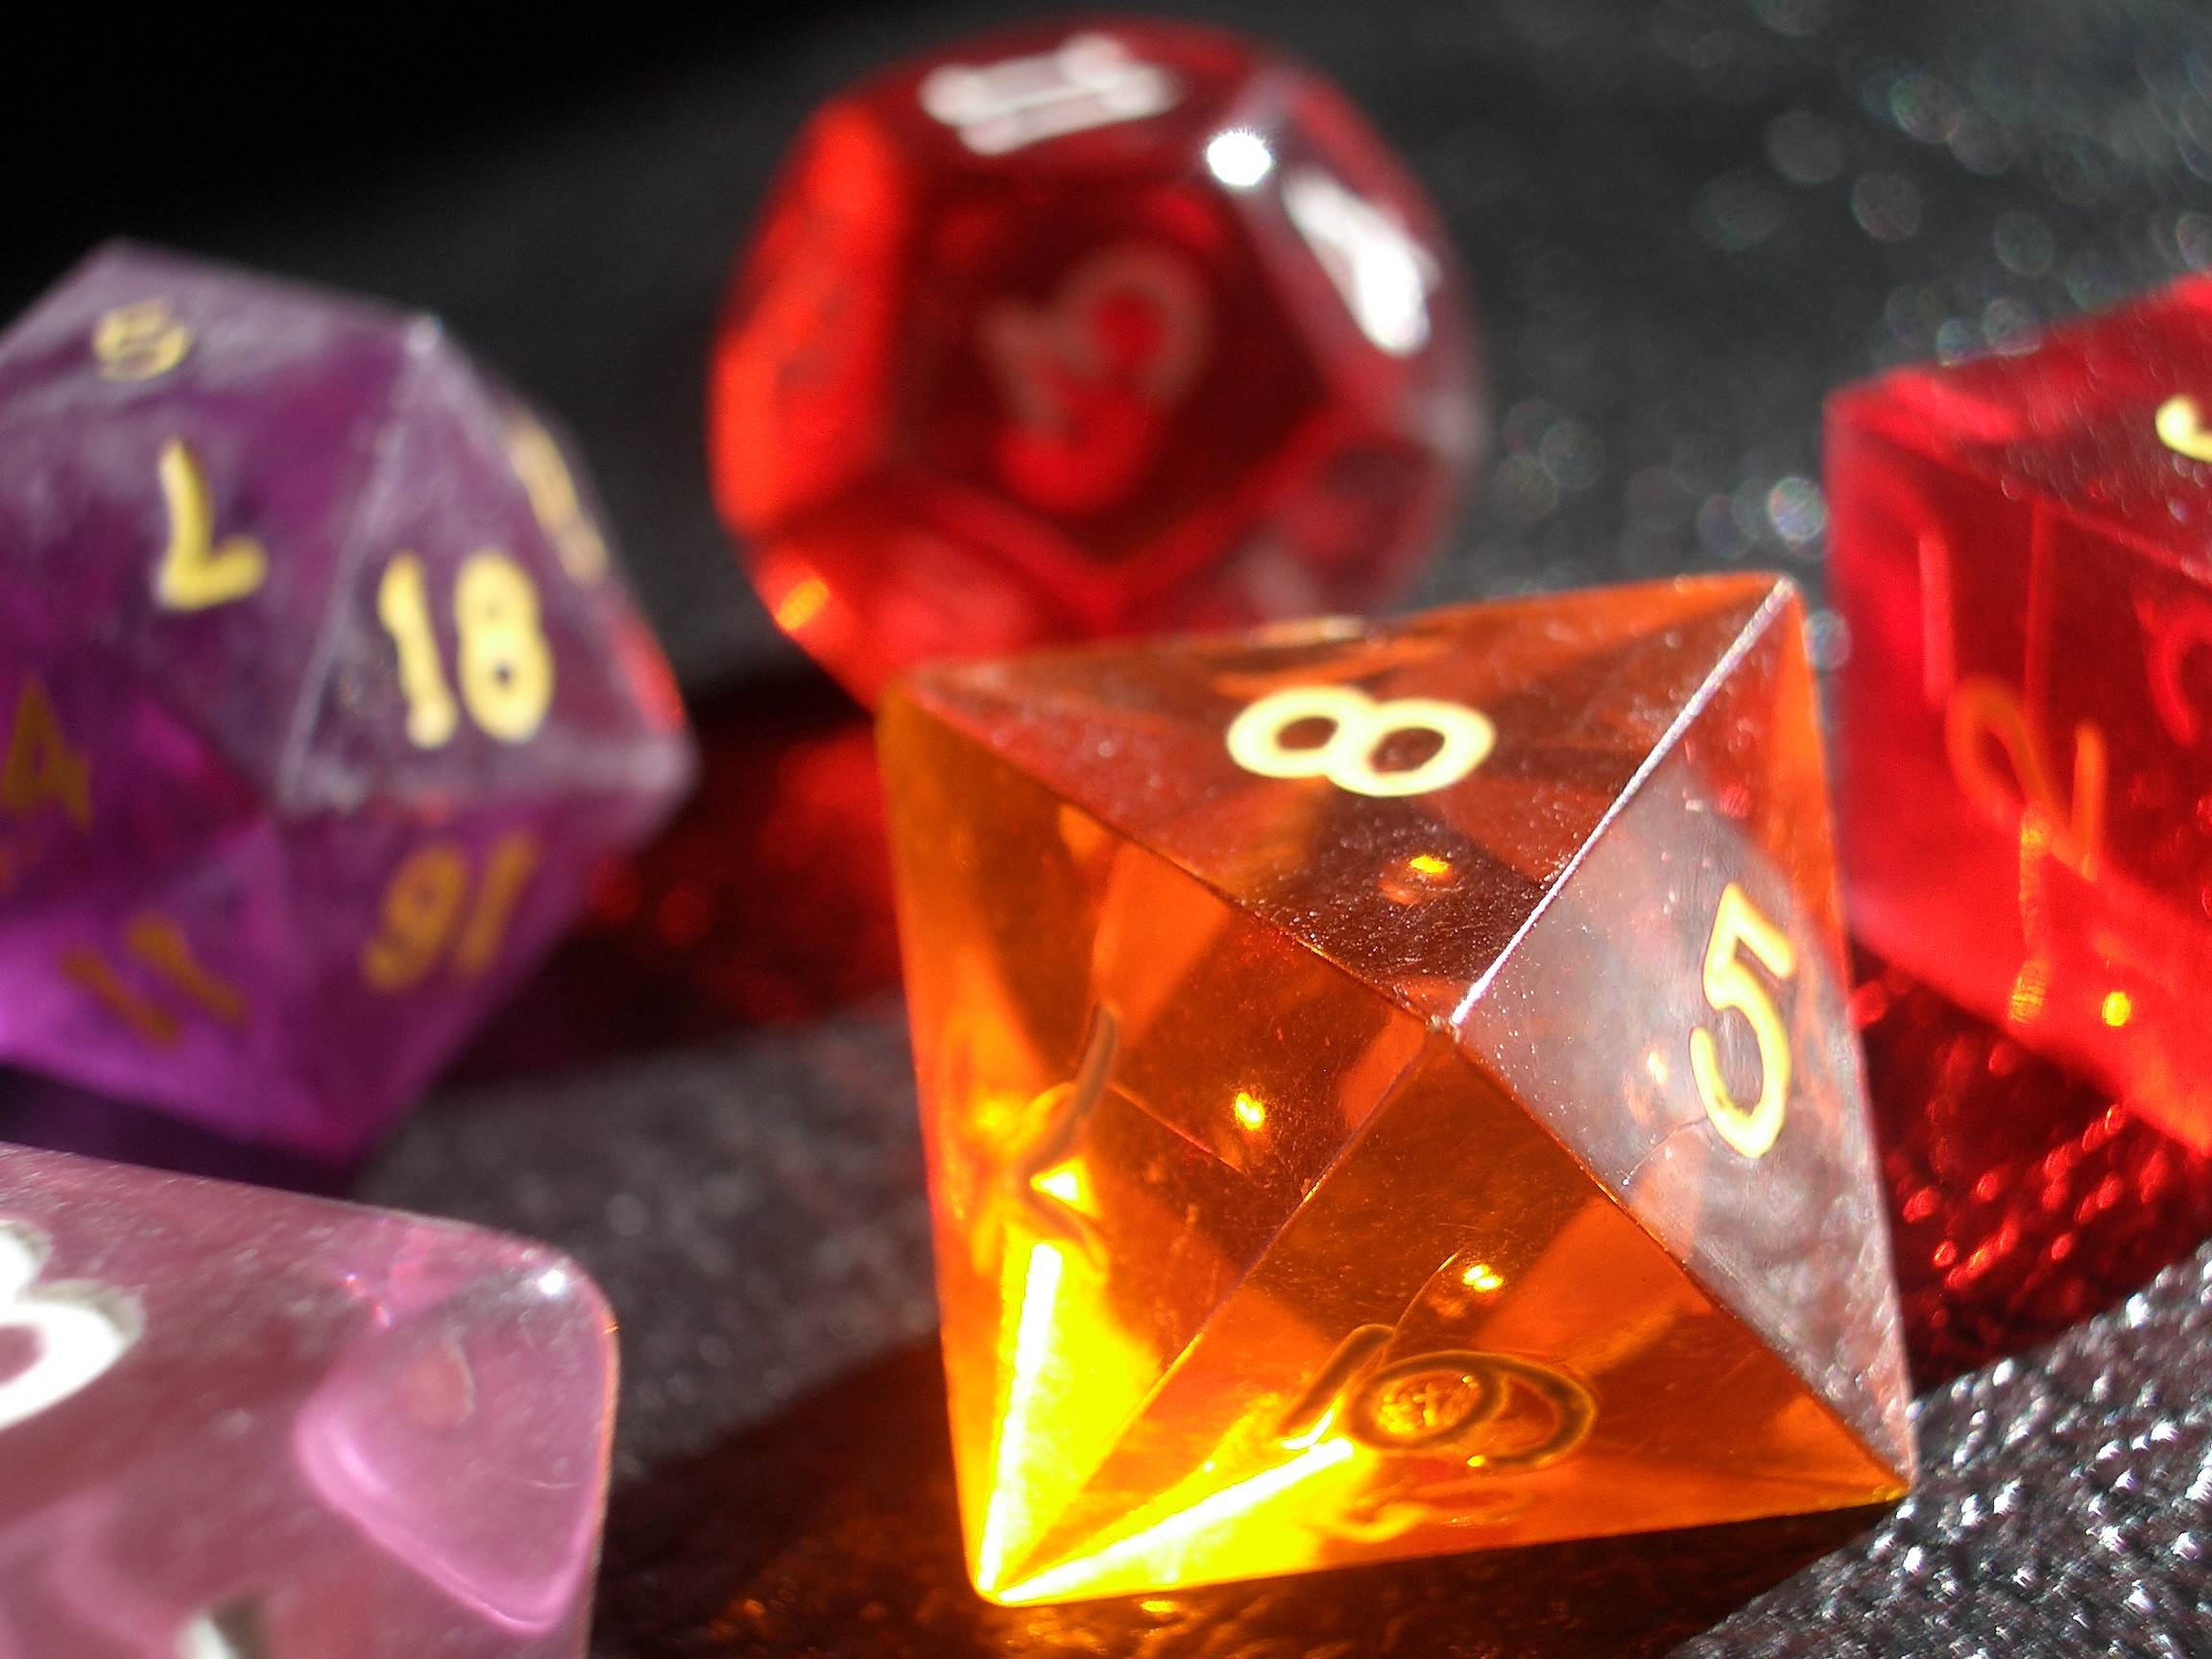 Res: 2304x1728, coloured gaming dice 4details